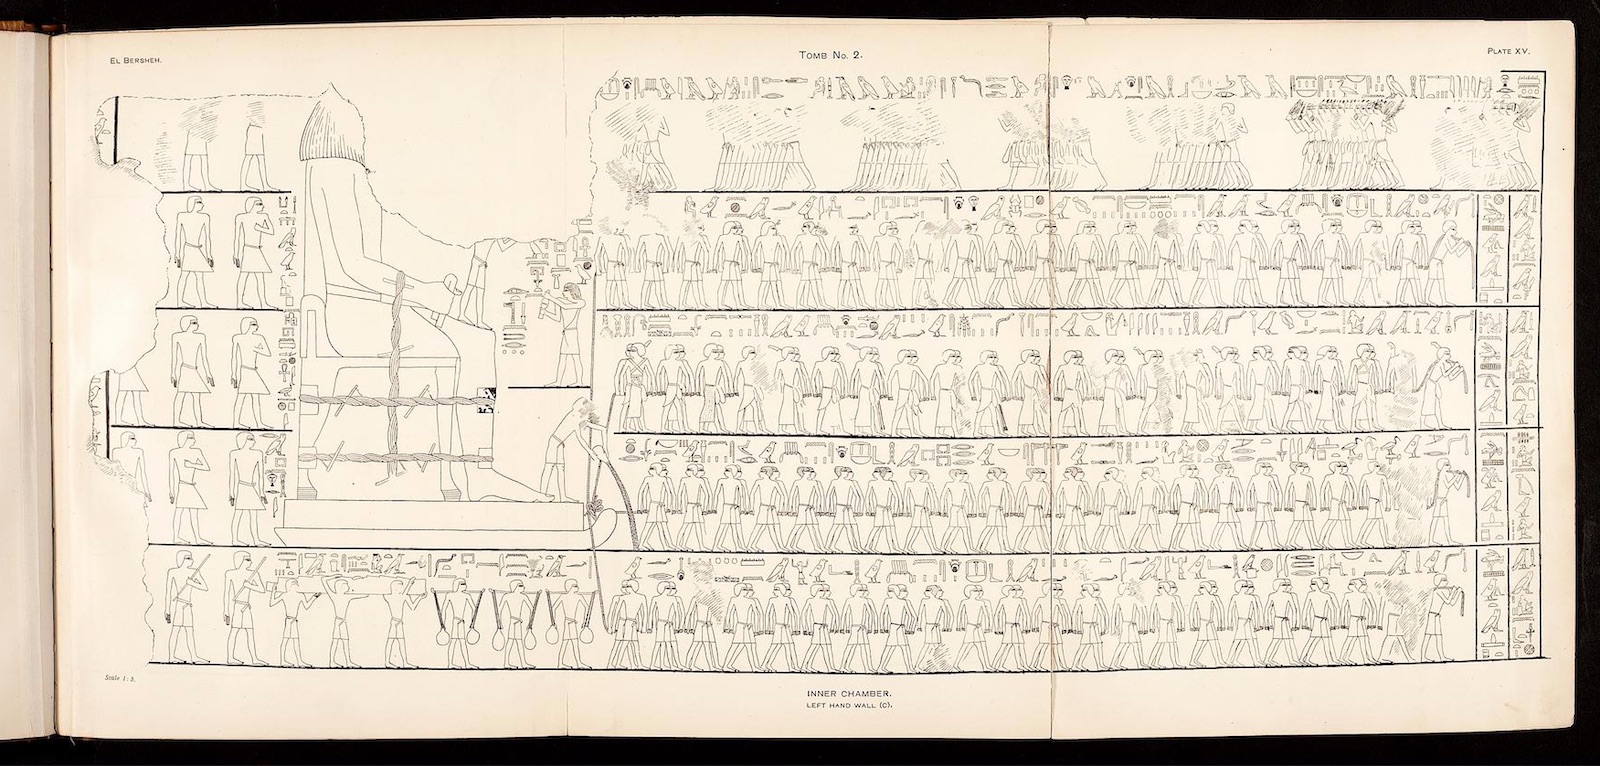 Line drawing of an Egyptian tomb painting showing rows of men pulling a massive stone statue at the far left